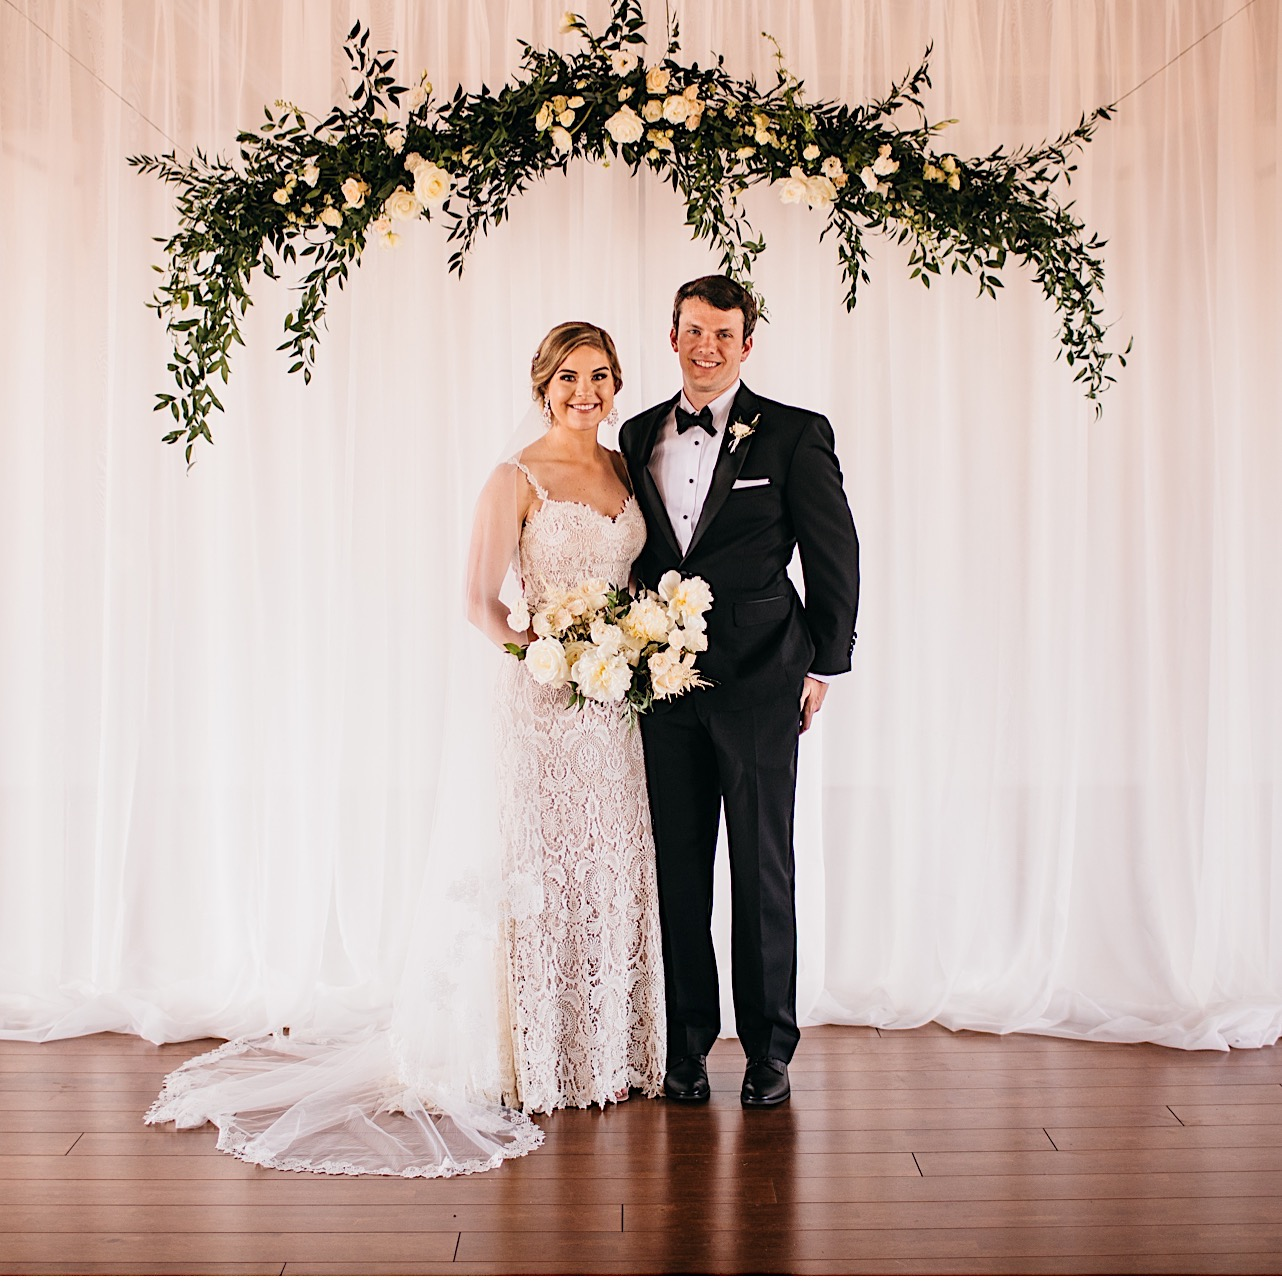 bride and groom stand in front of a tall, white curtain beneath a wedding arch made of greenery and white blooms